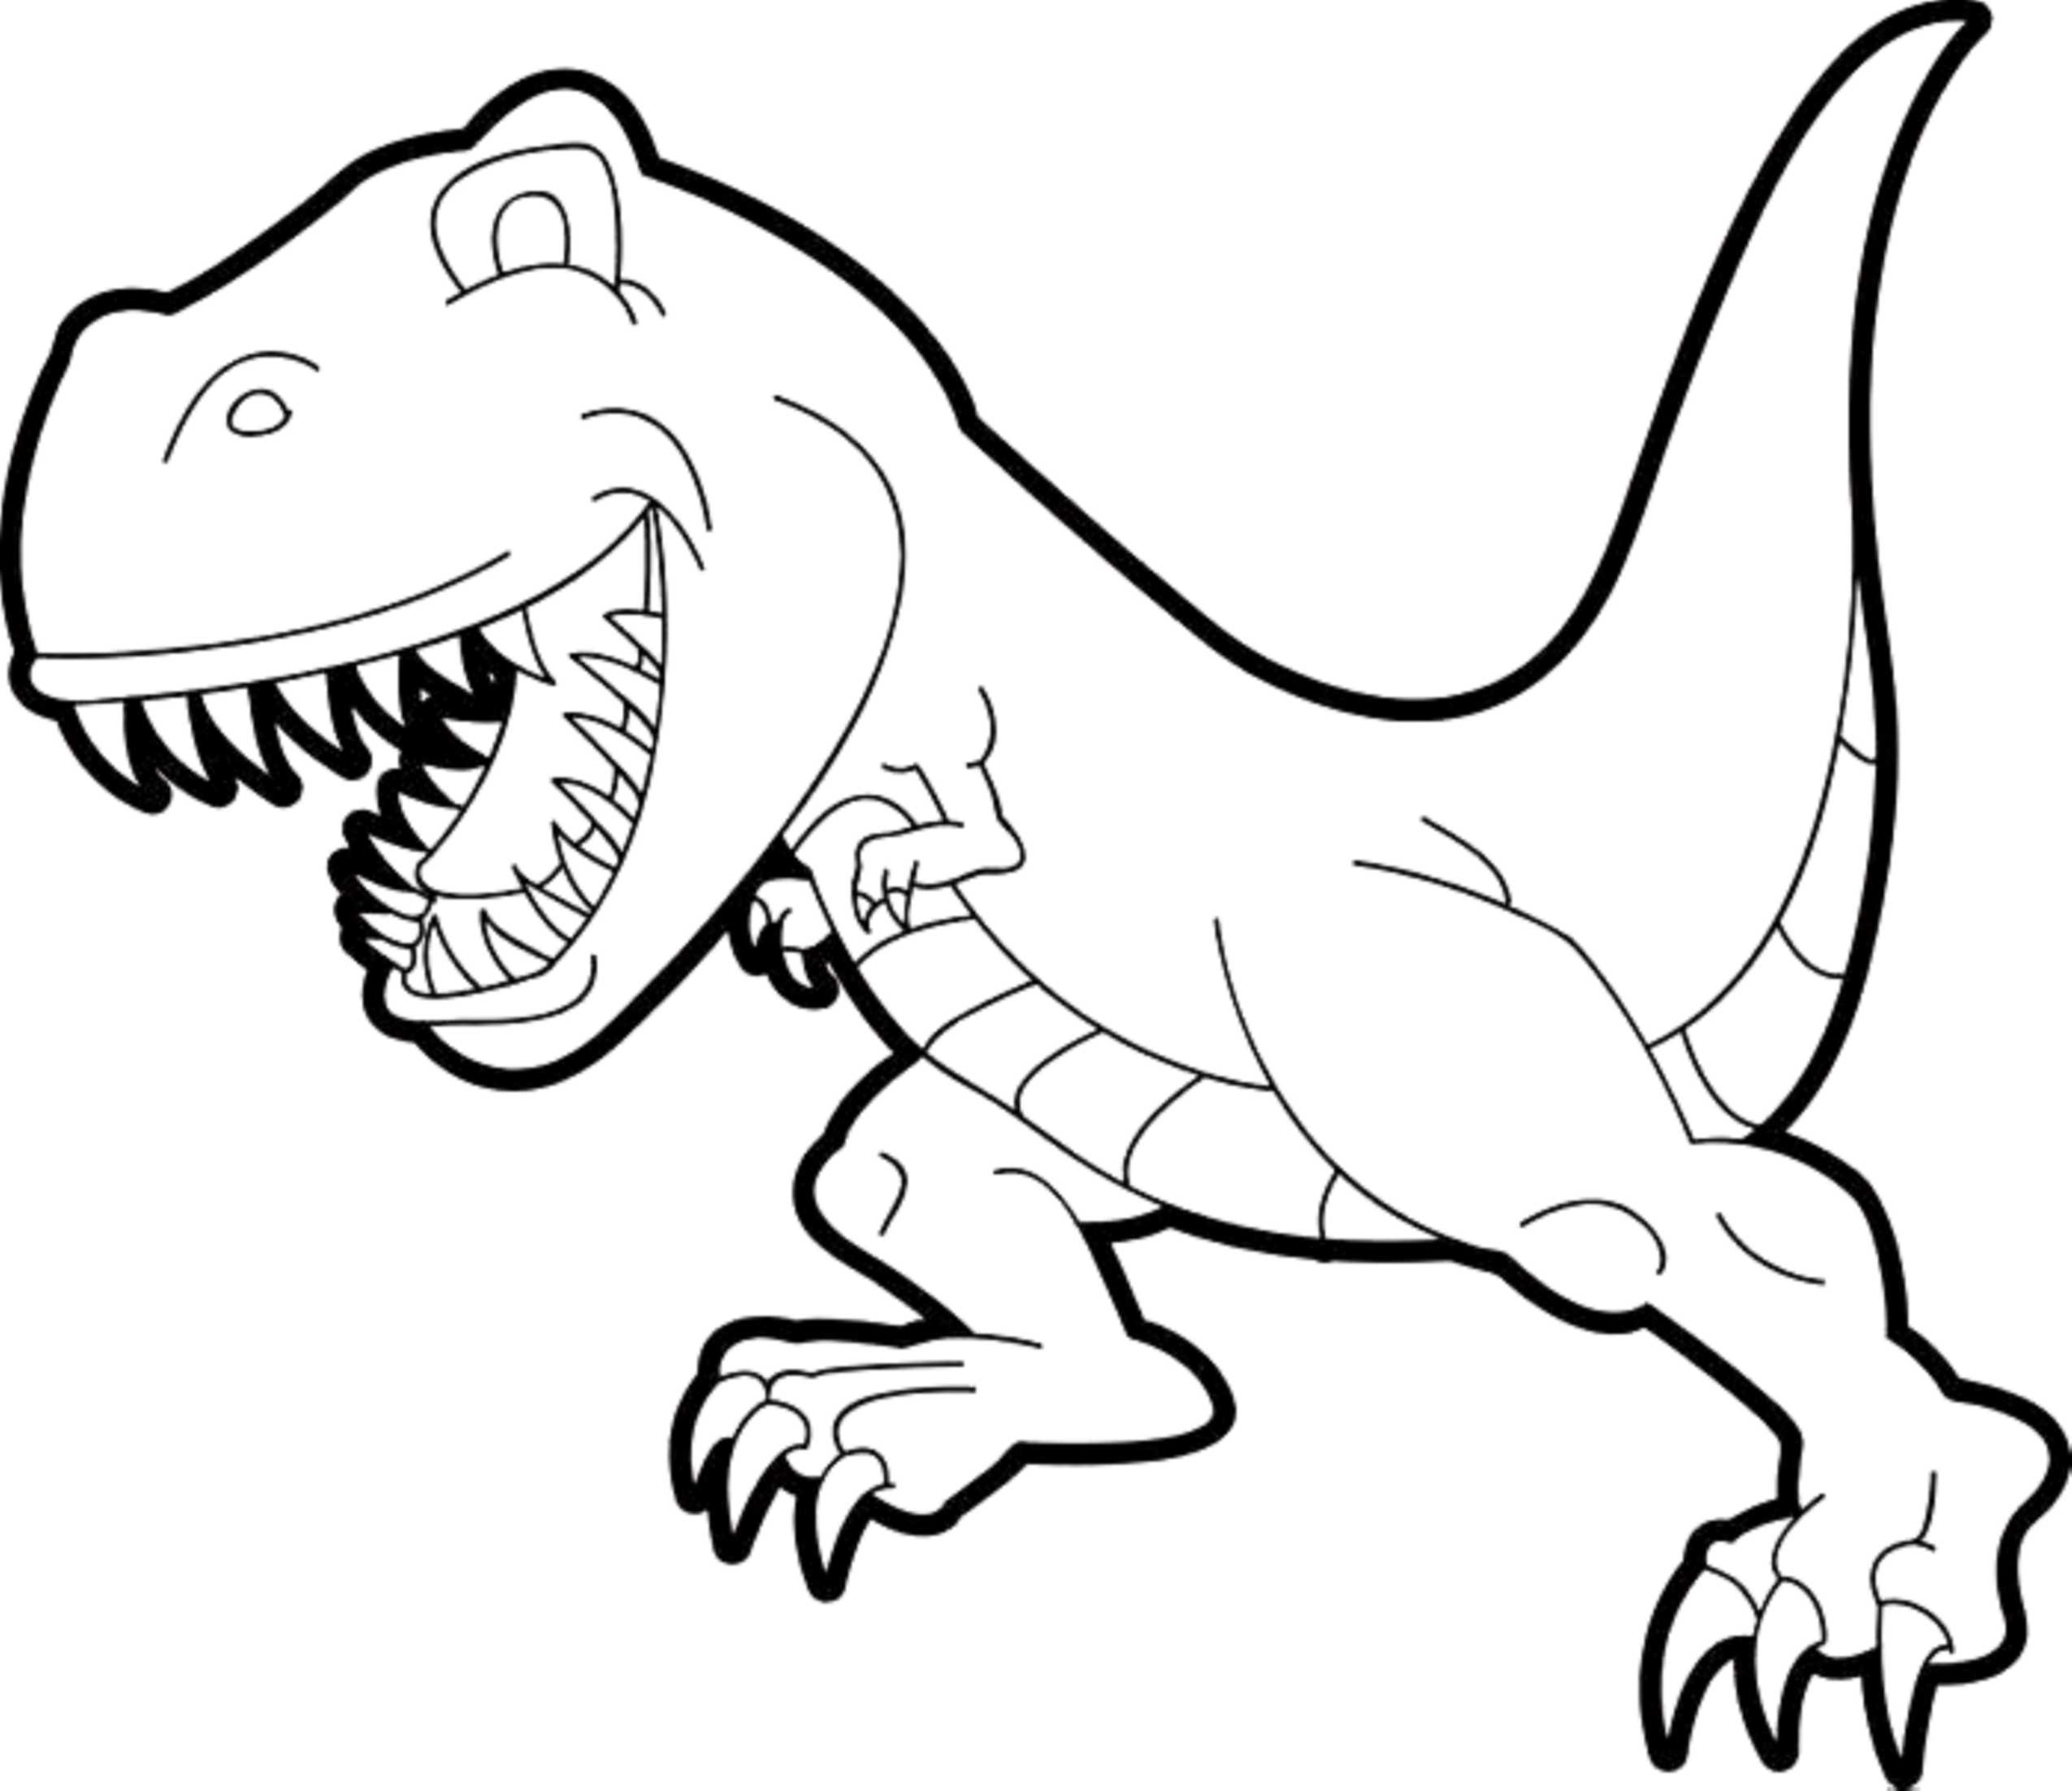 dinosaur to color easy dinosaur coloring pages coloring home color to dinosaur